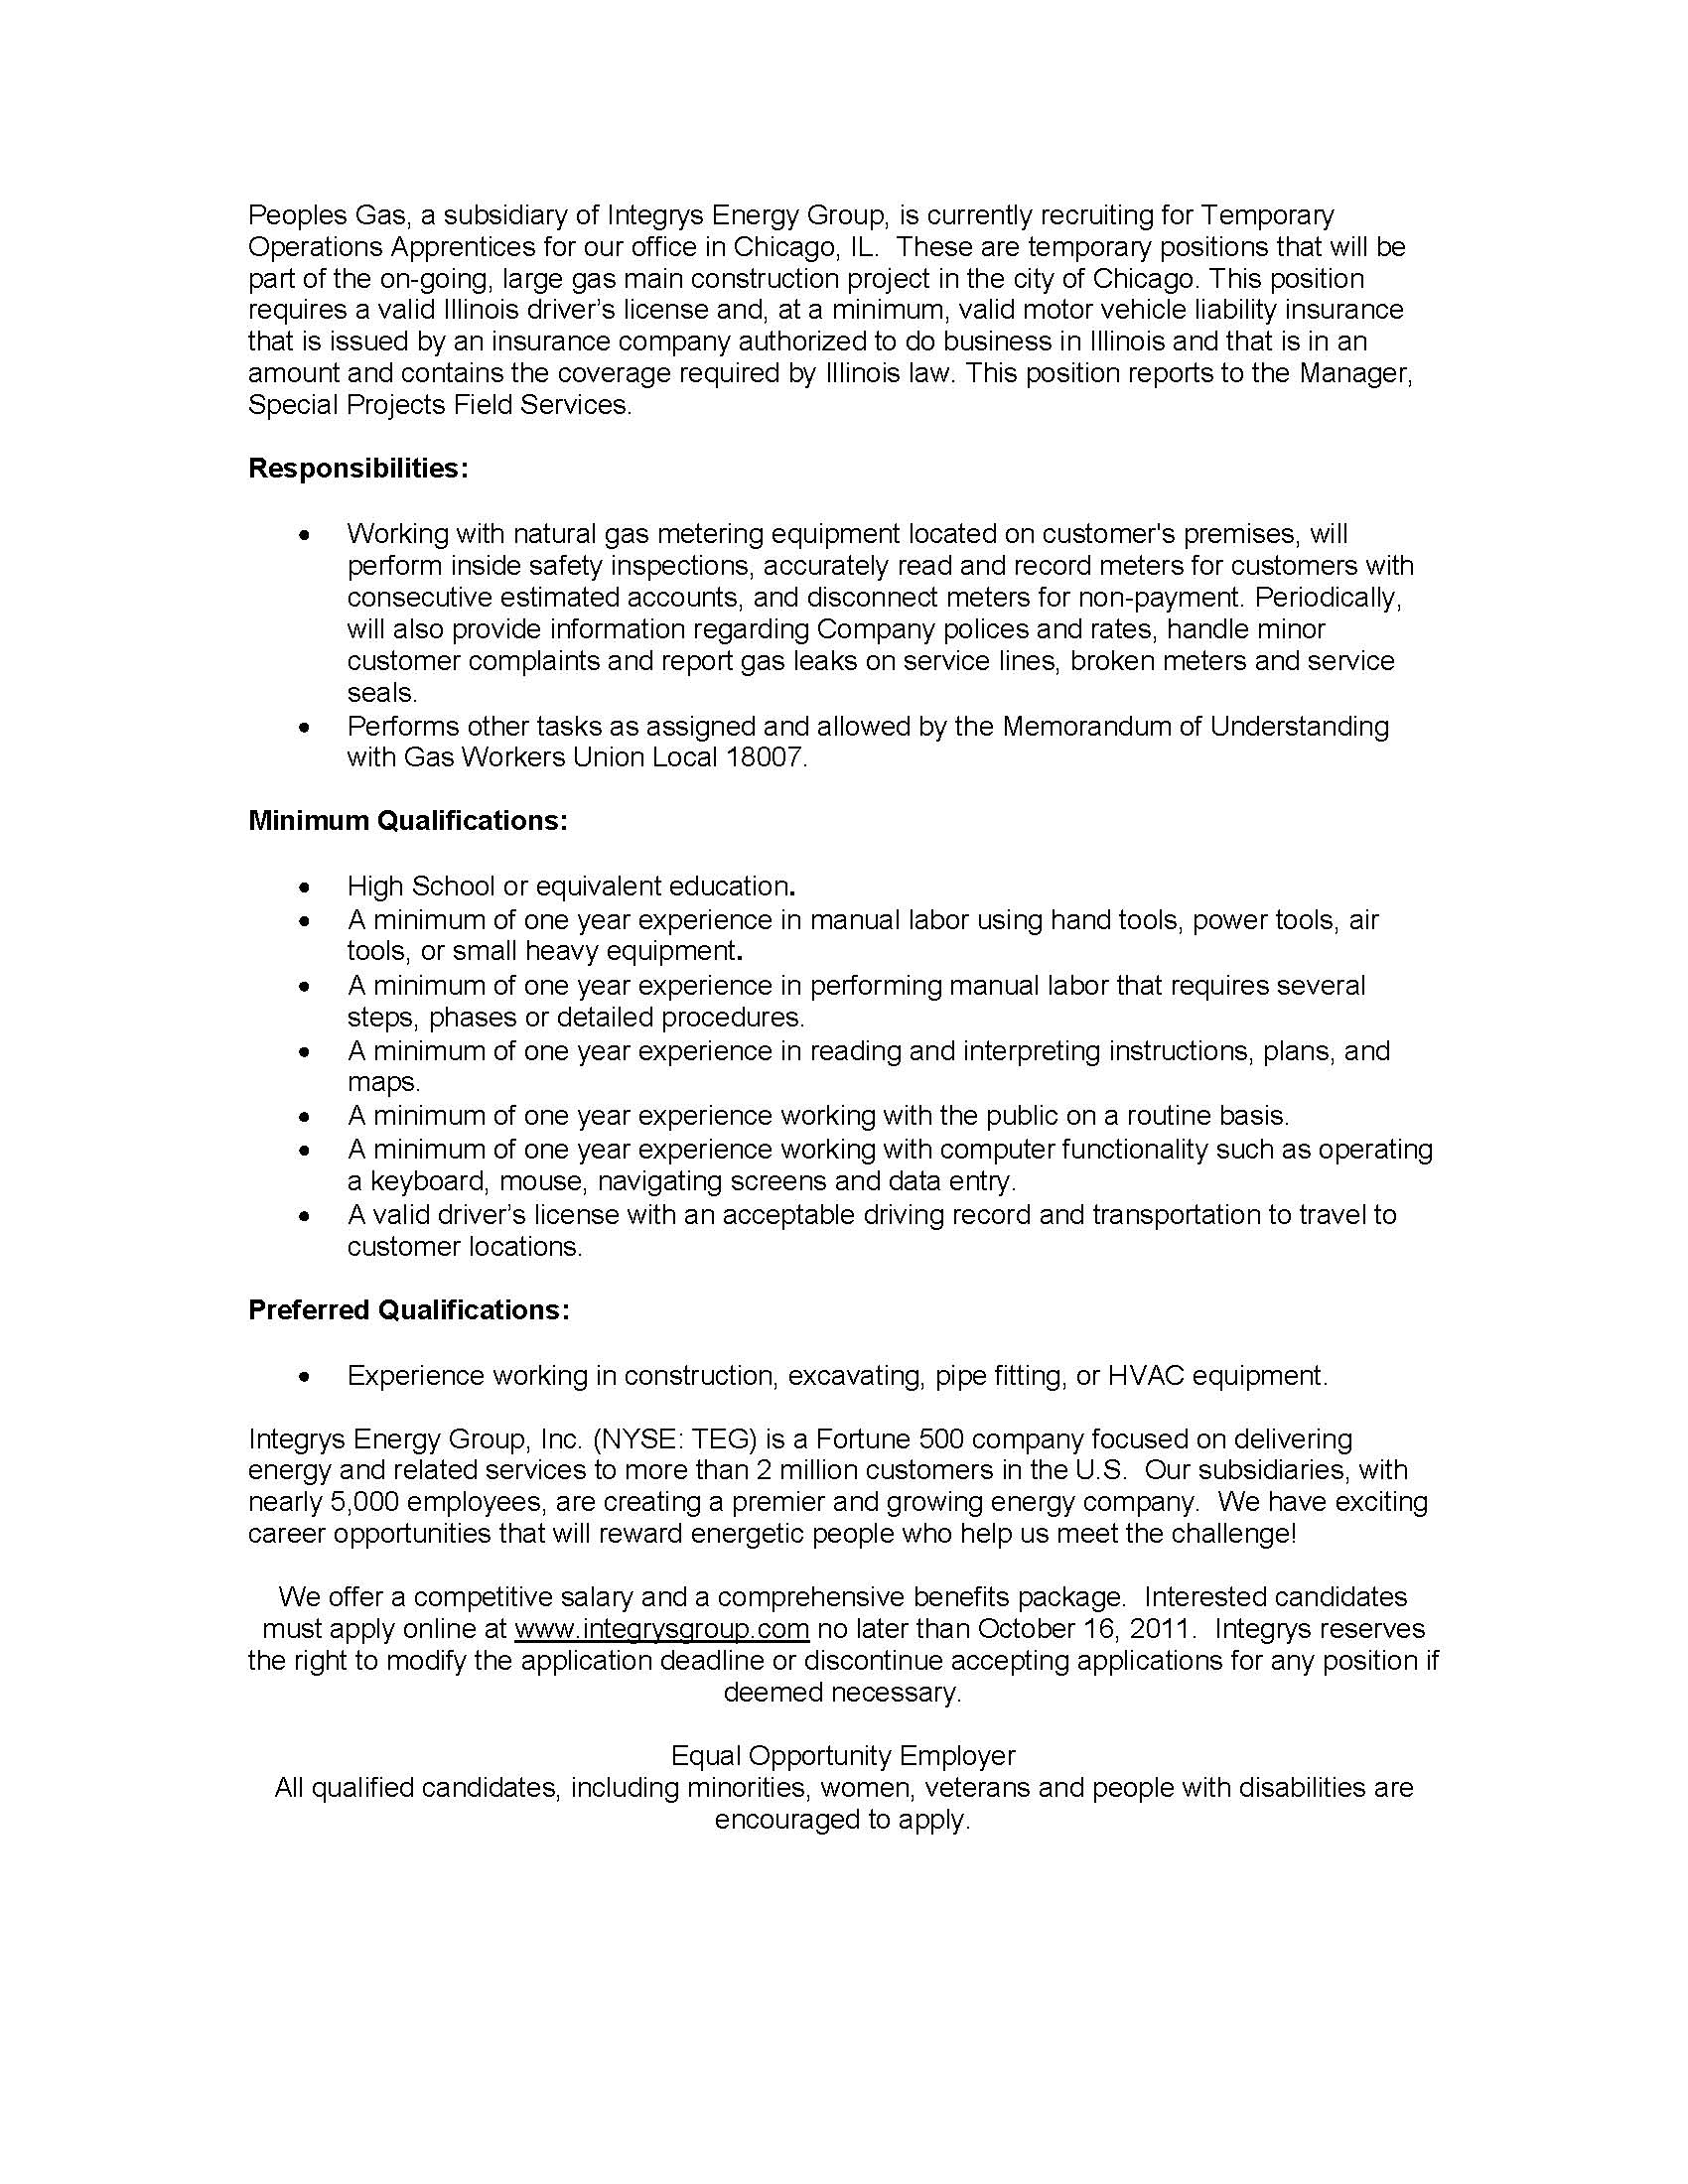 Luxury Integrys Energy Resume Frieze - Administrative Officer Cover ...